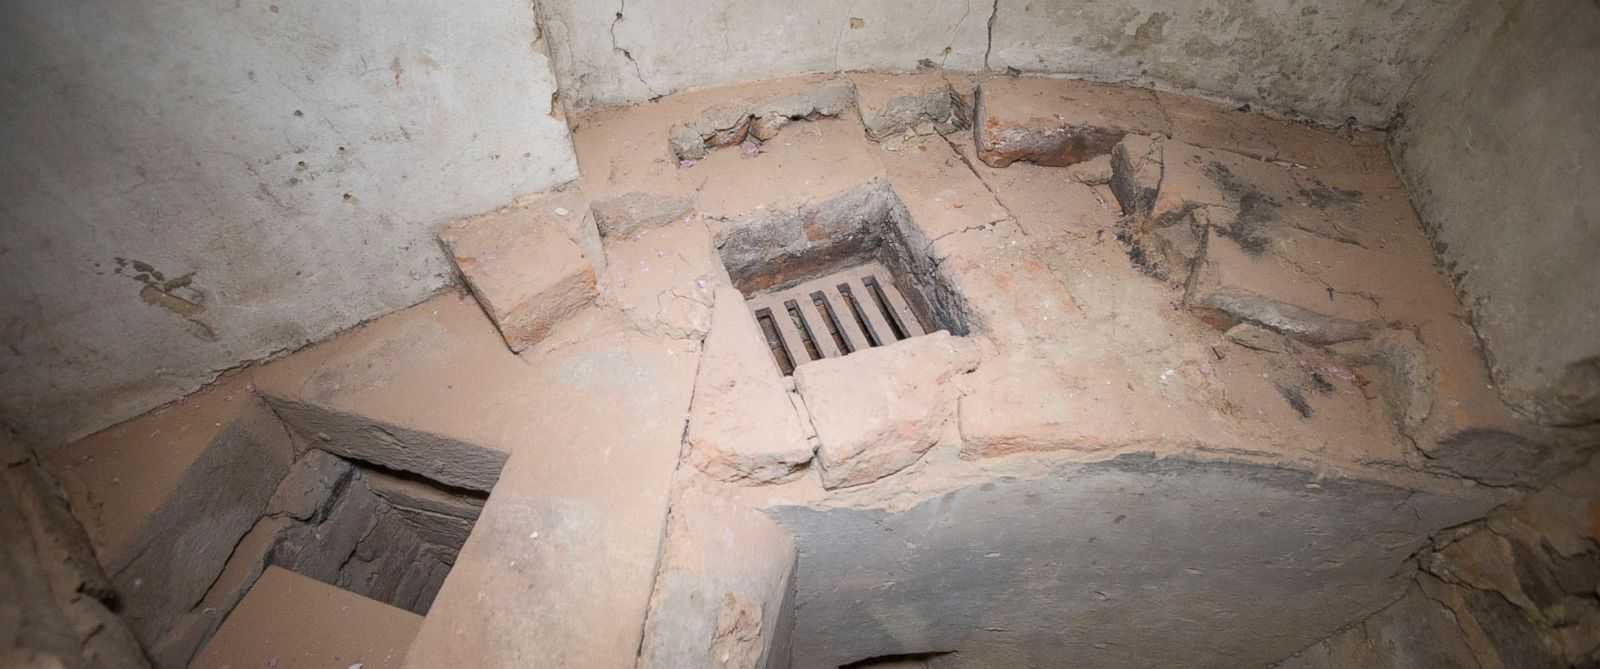 PHOTO: Thomas Jefferson created this specialty chemistry hearth for new experiments when he designed the University of Virginia rotunda.